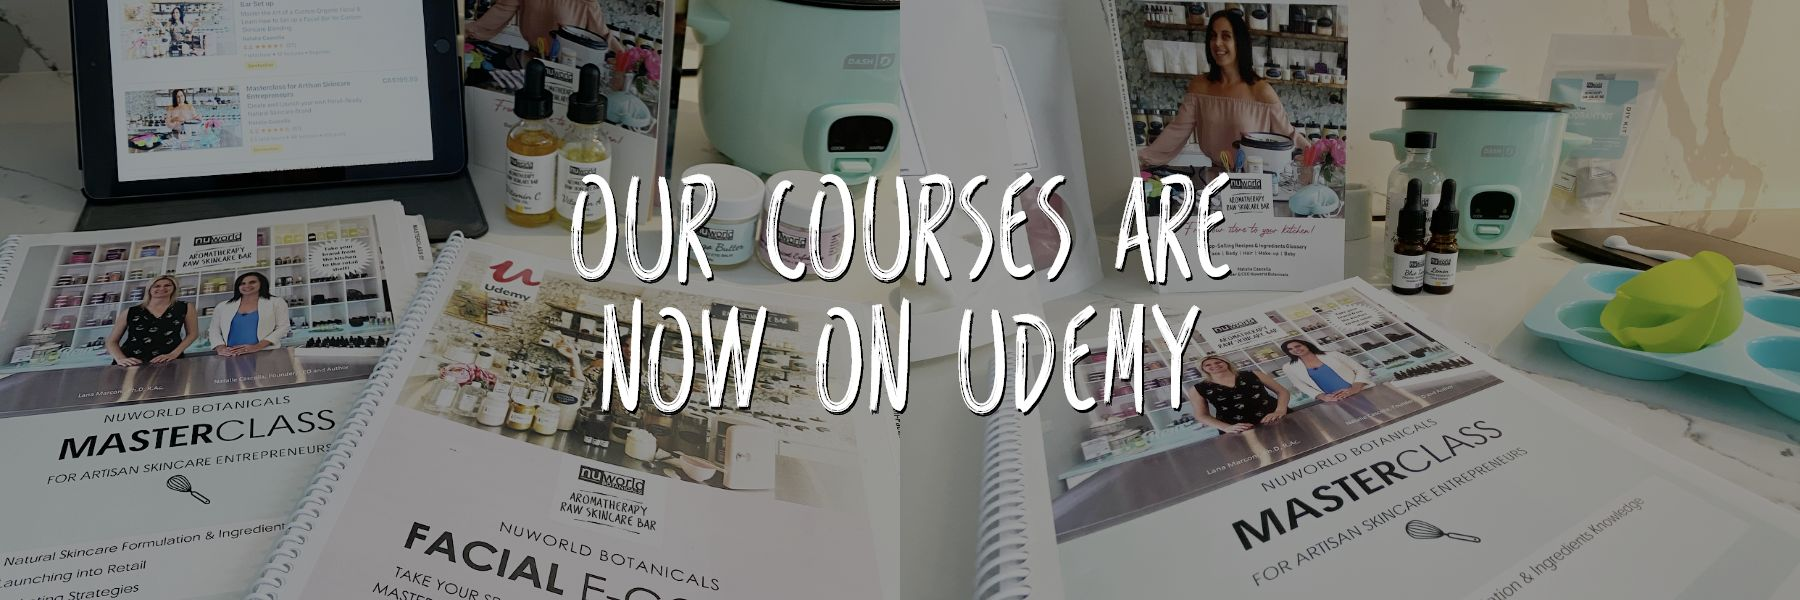 Our courses are now on Udemy